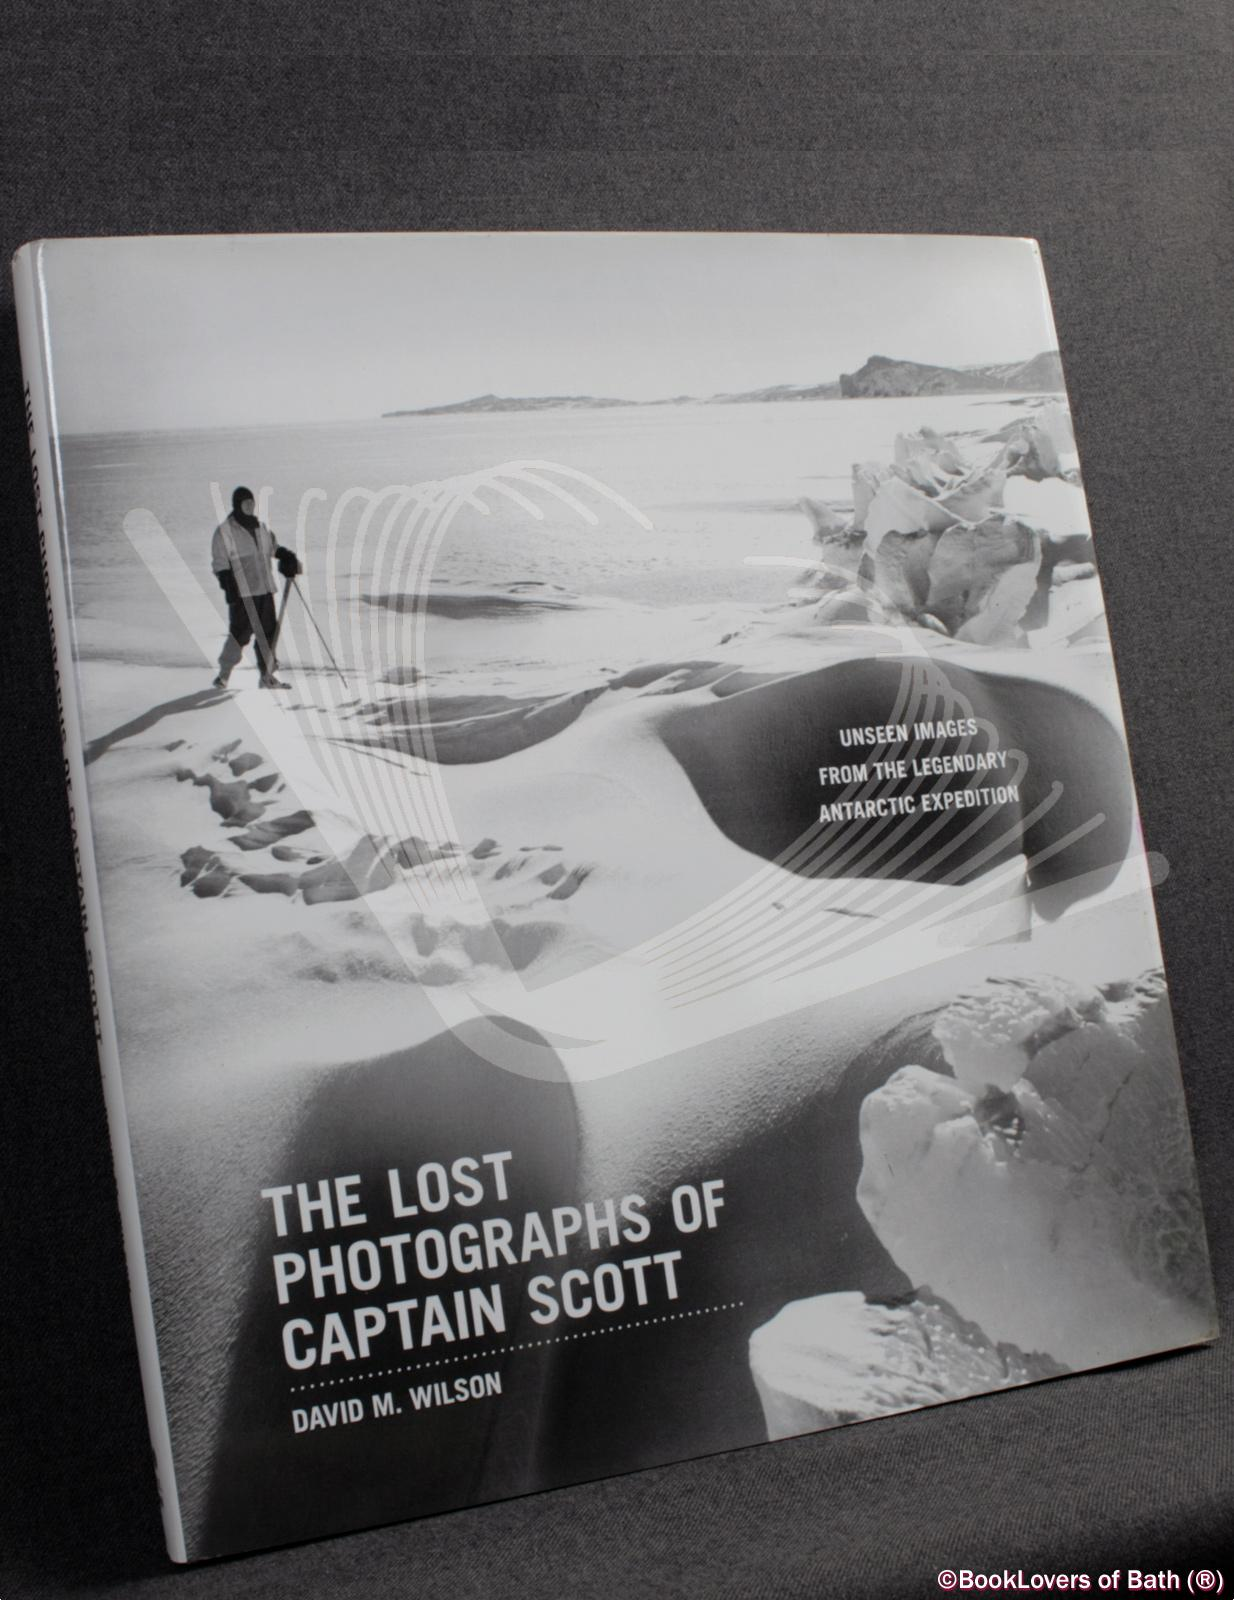 The Lost Photographs of Captain Scott: Unseen Photographs from the Legendary Antarctic Expedition - David M. Wilson